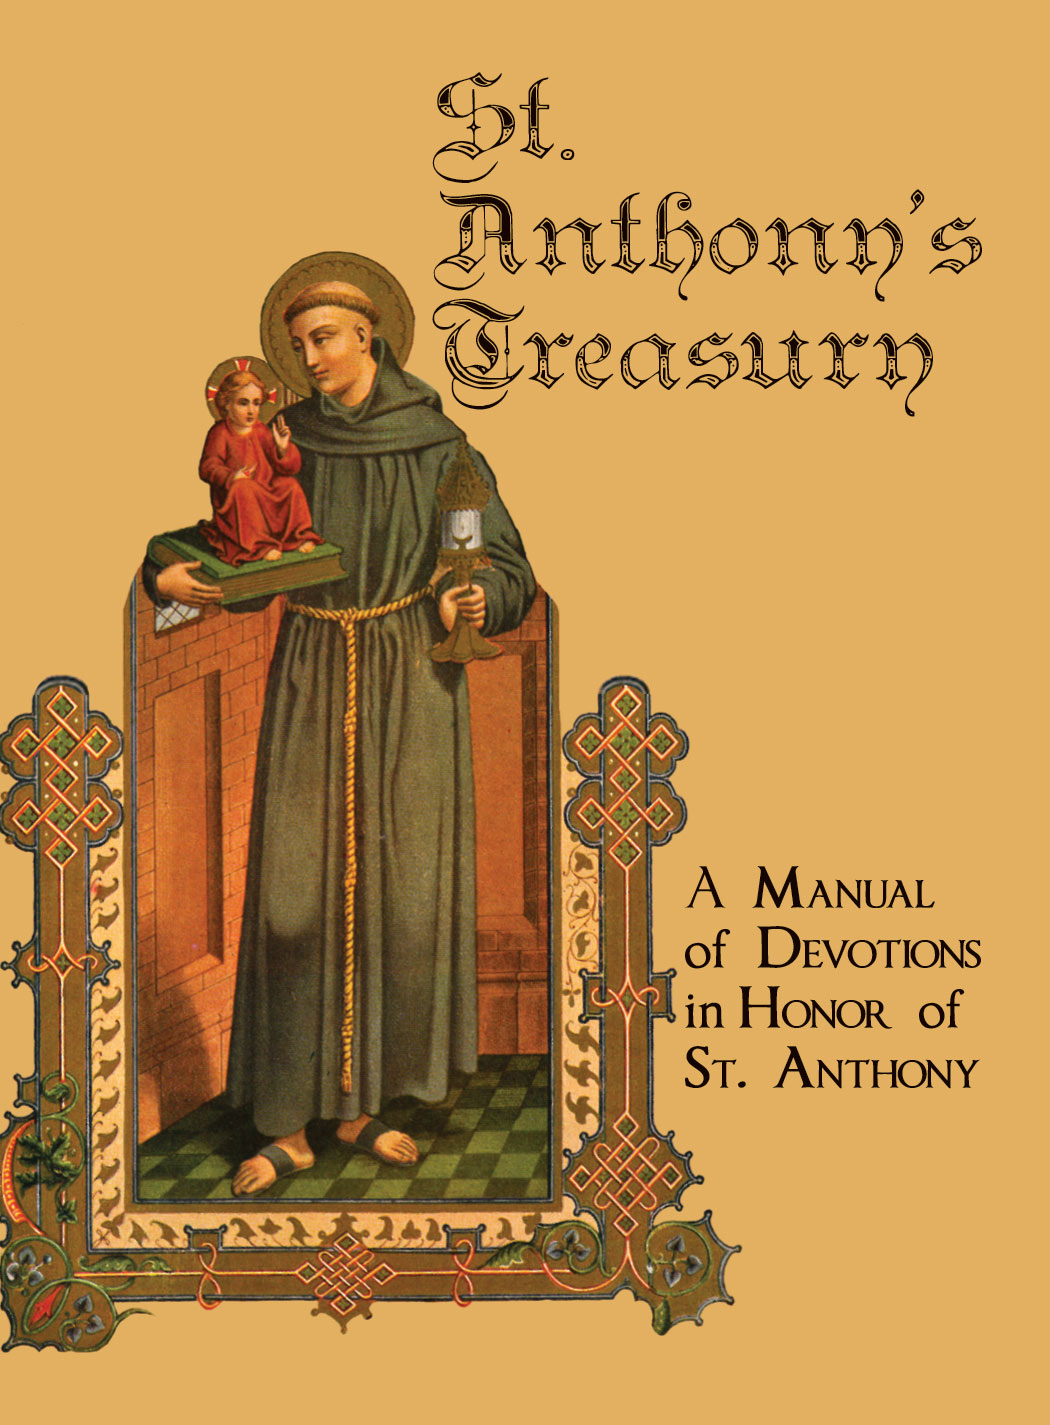 St. Anthony's Treasury - Slightly Defective